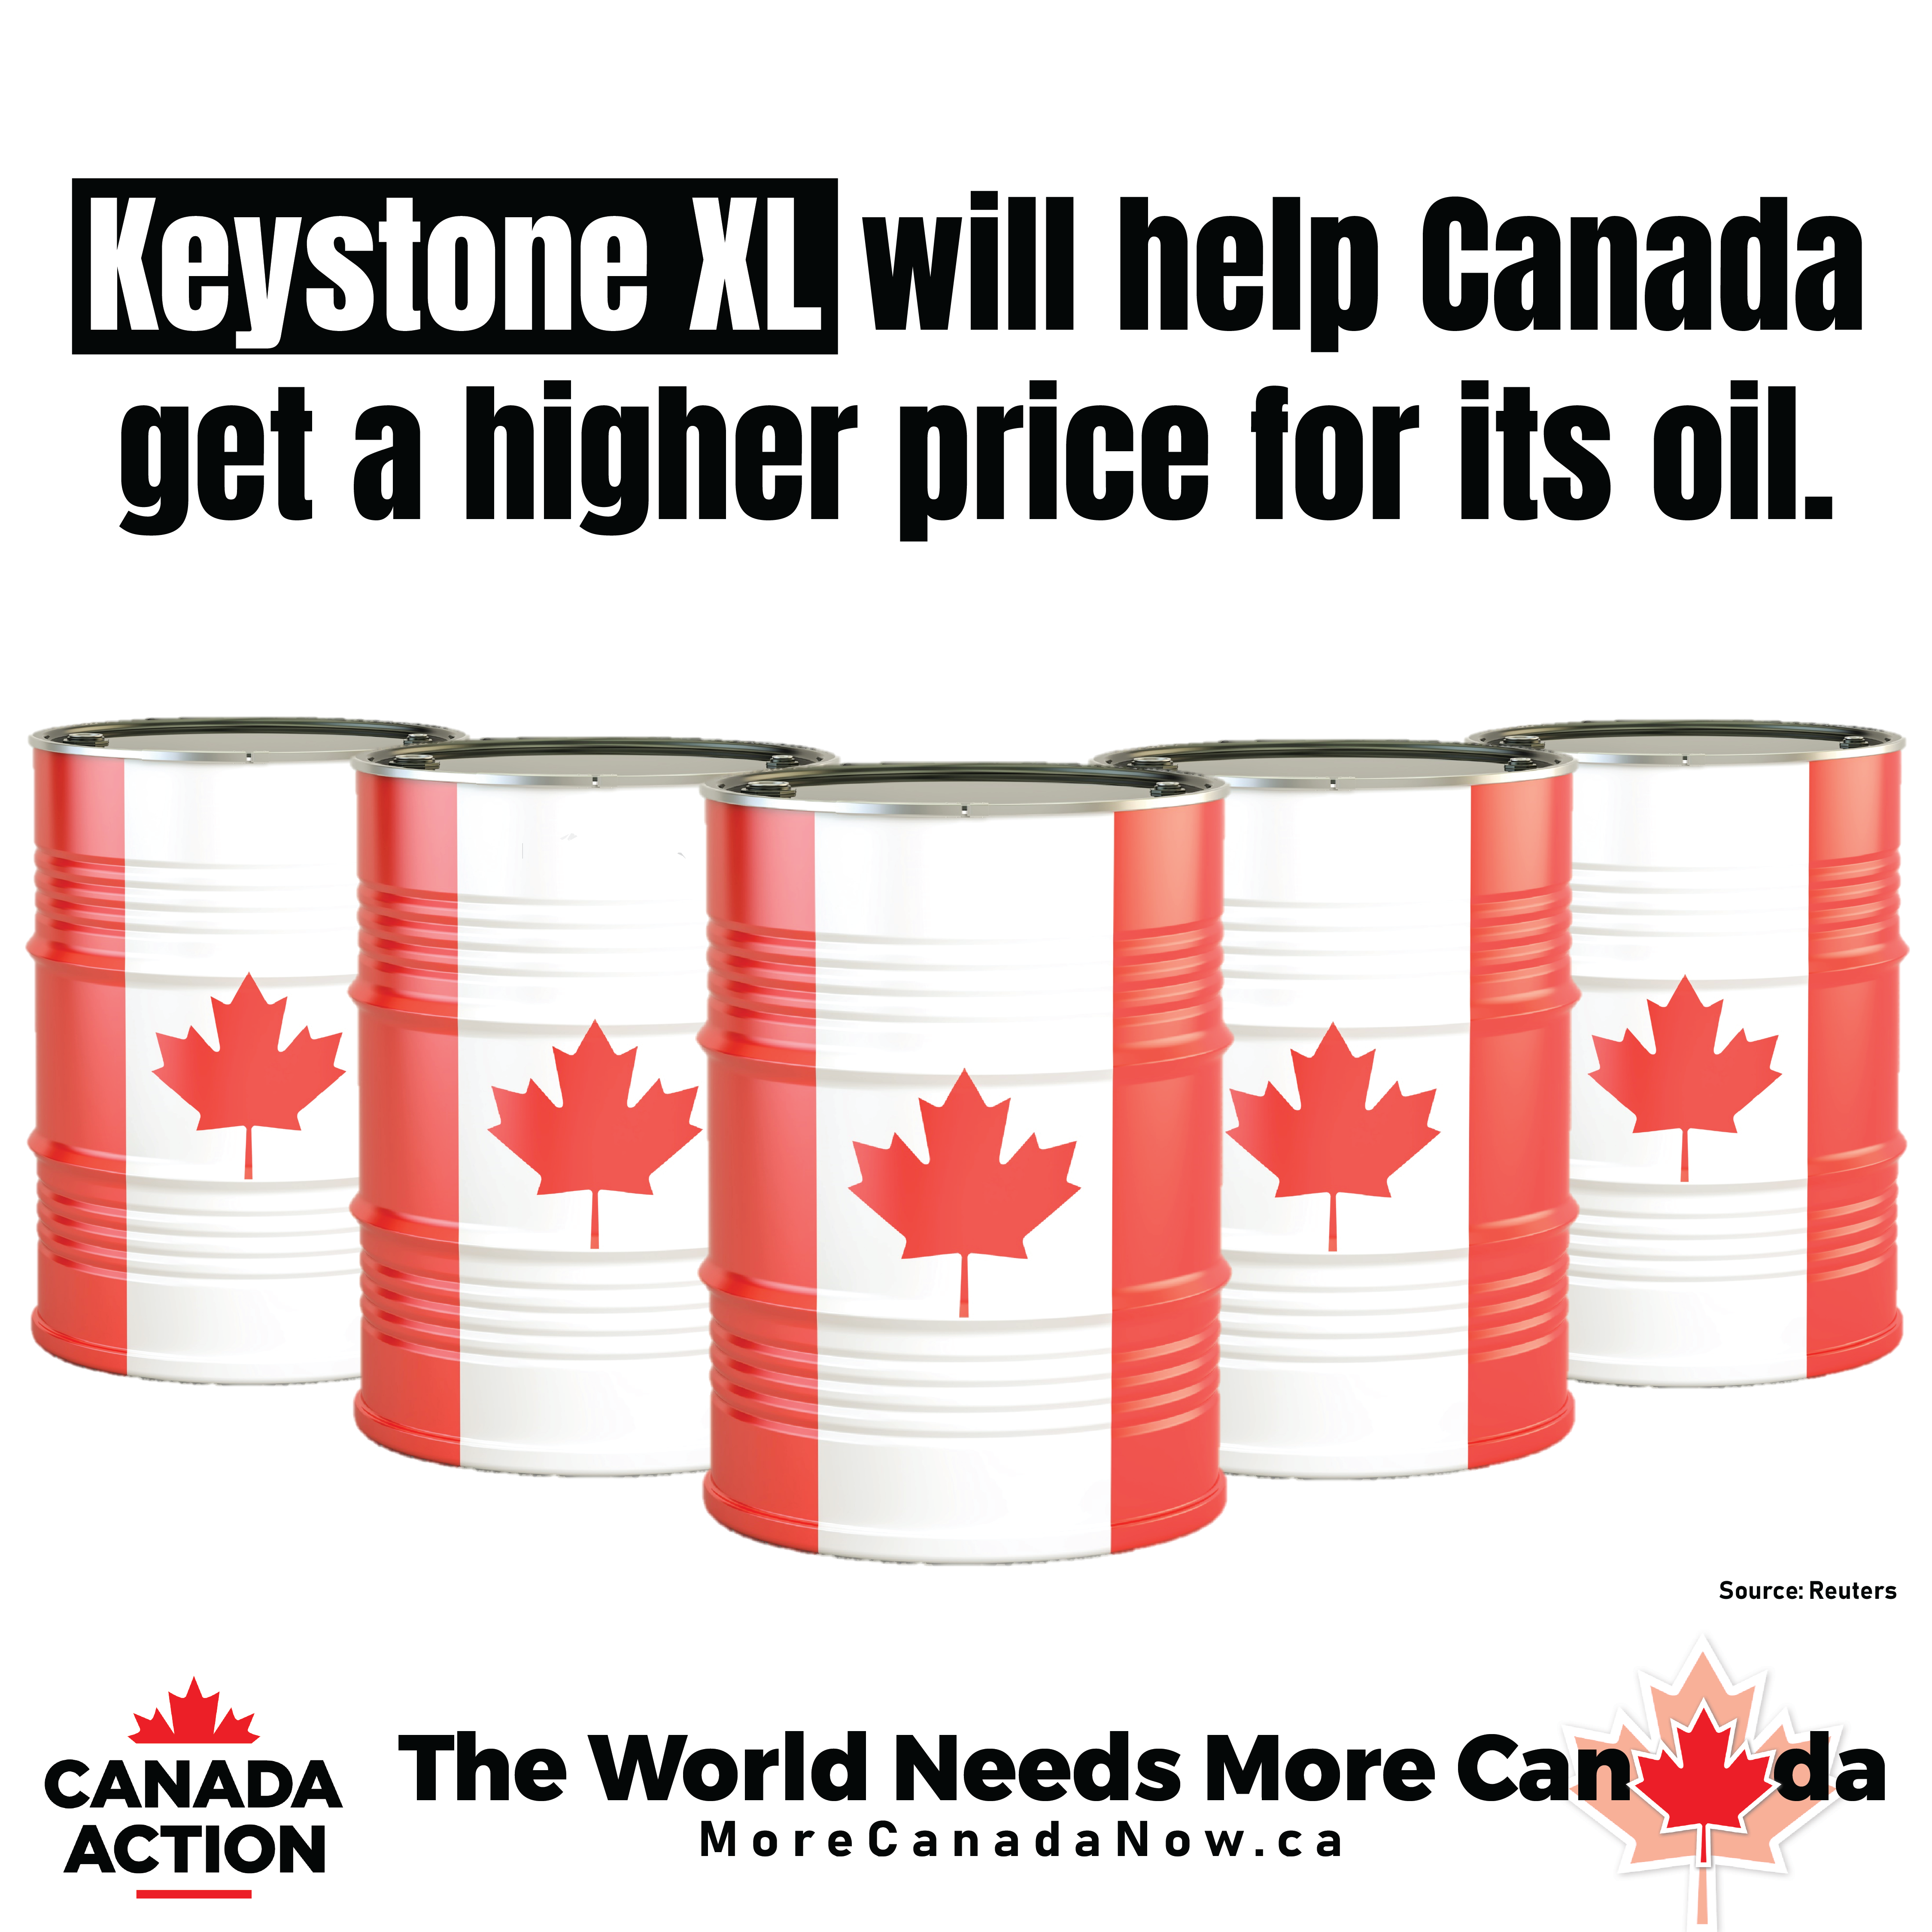 keystone xl will help canada get a higher price for its oil